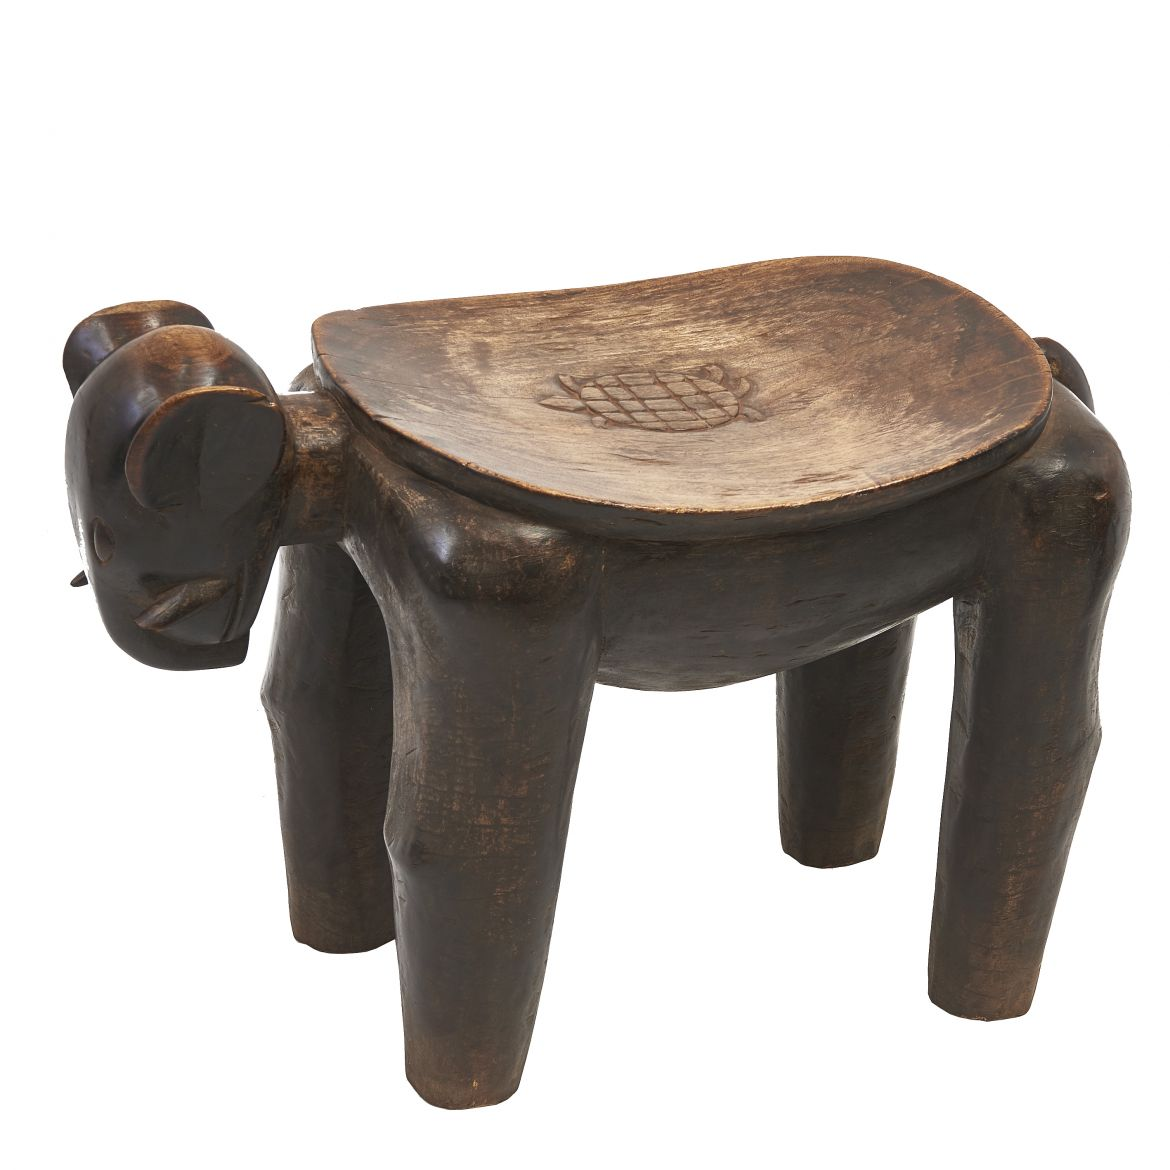 Rare Elephant Shaped Nupe Stool